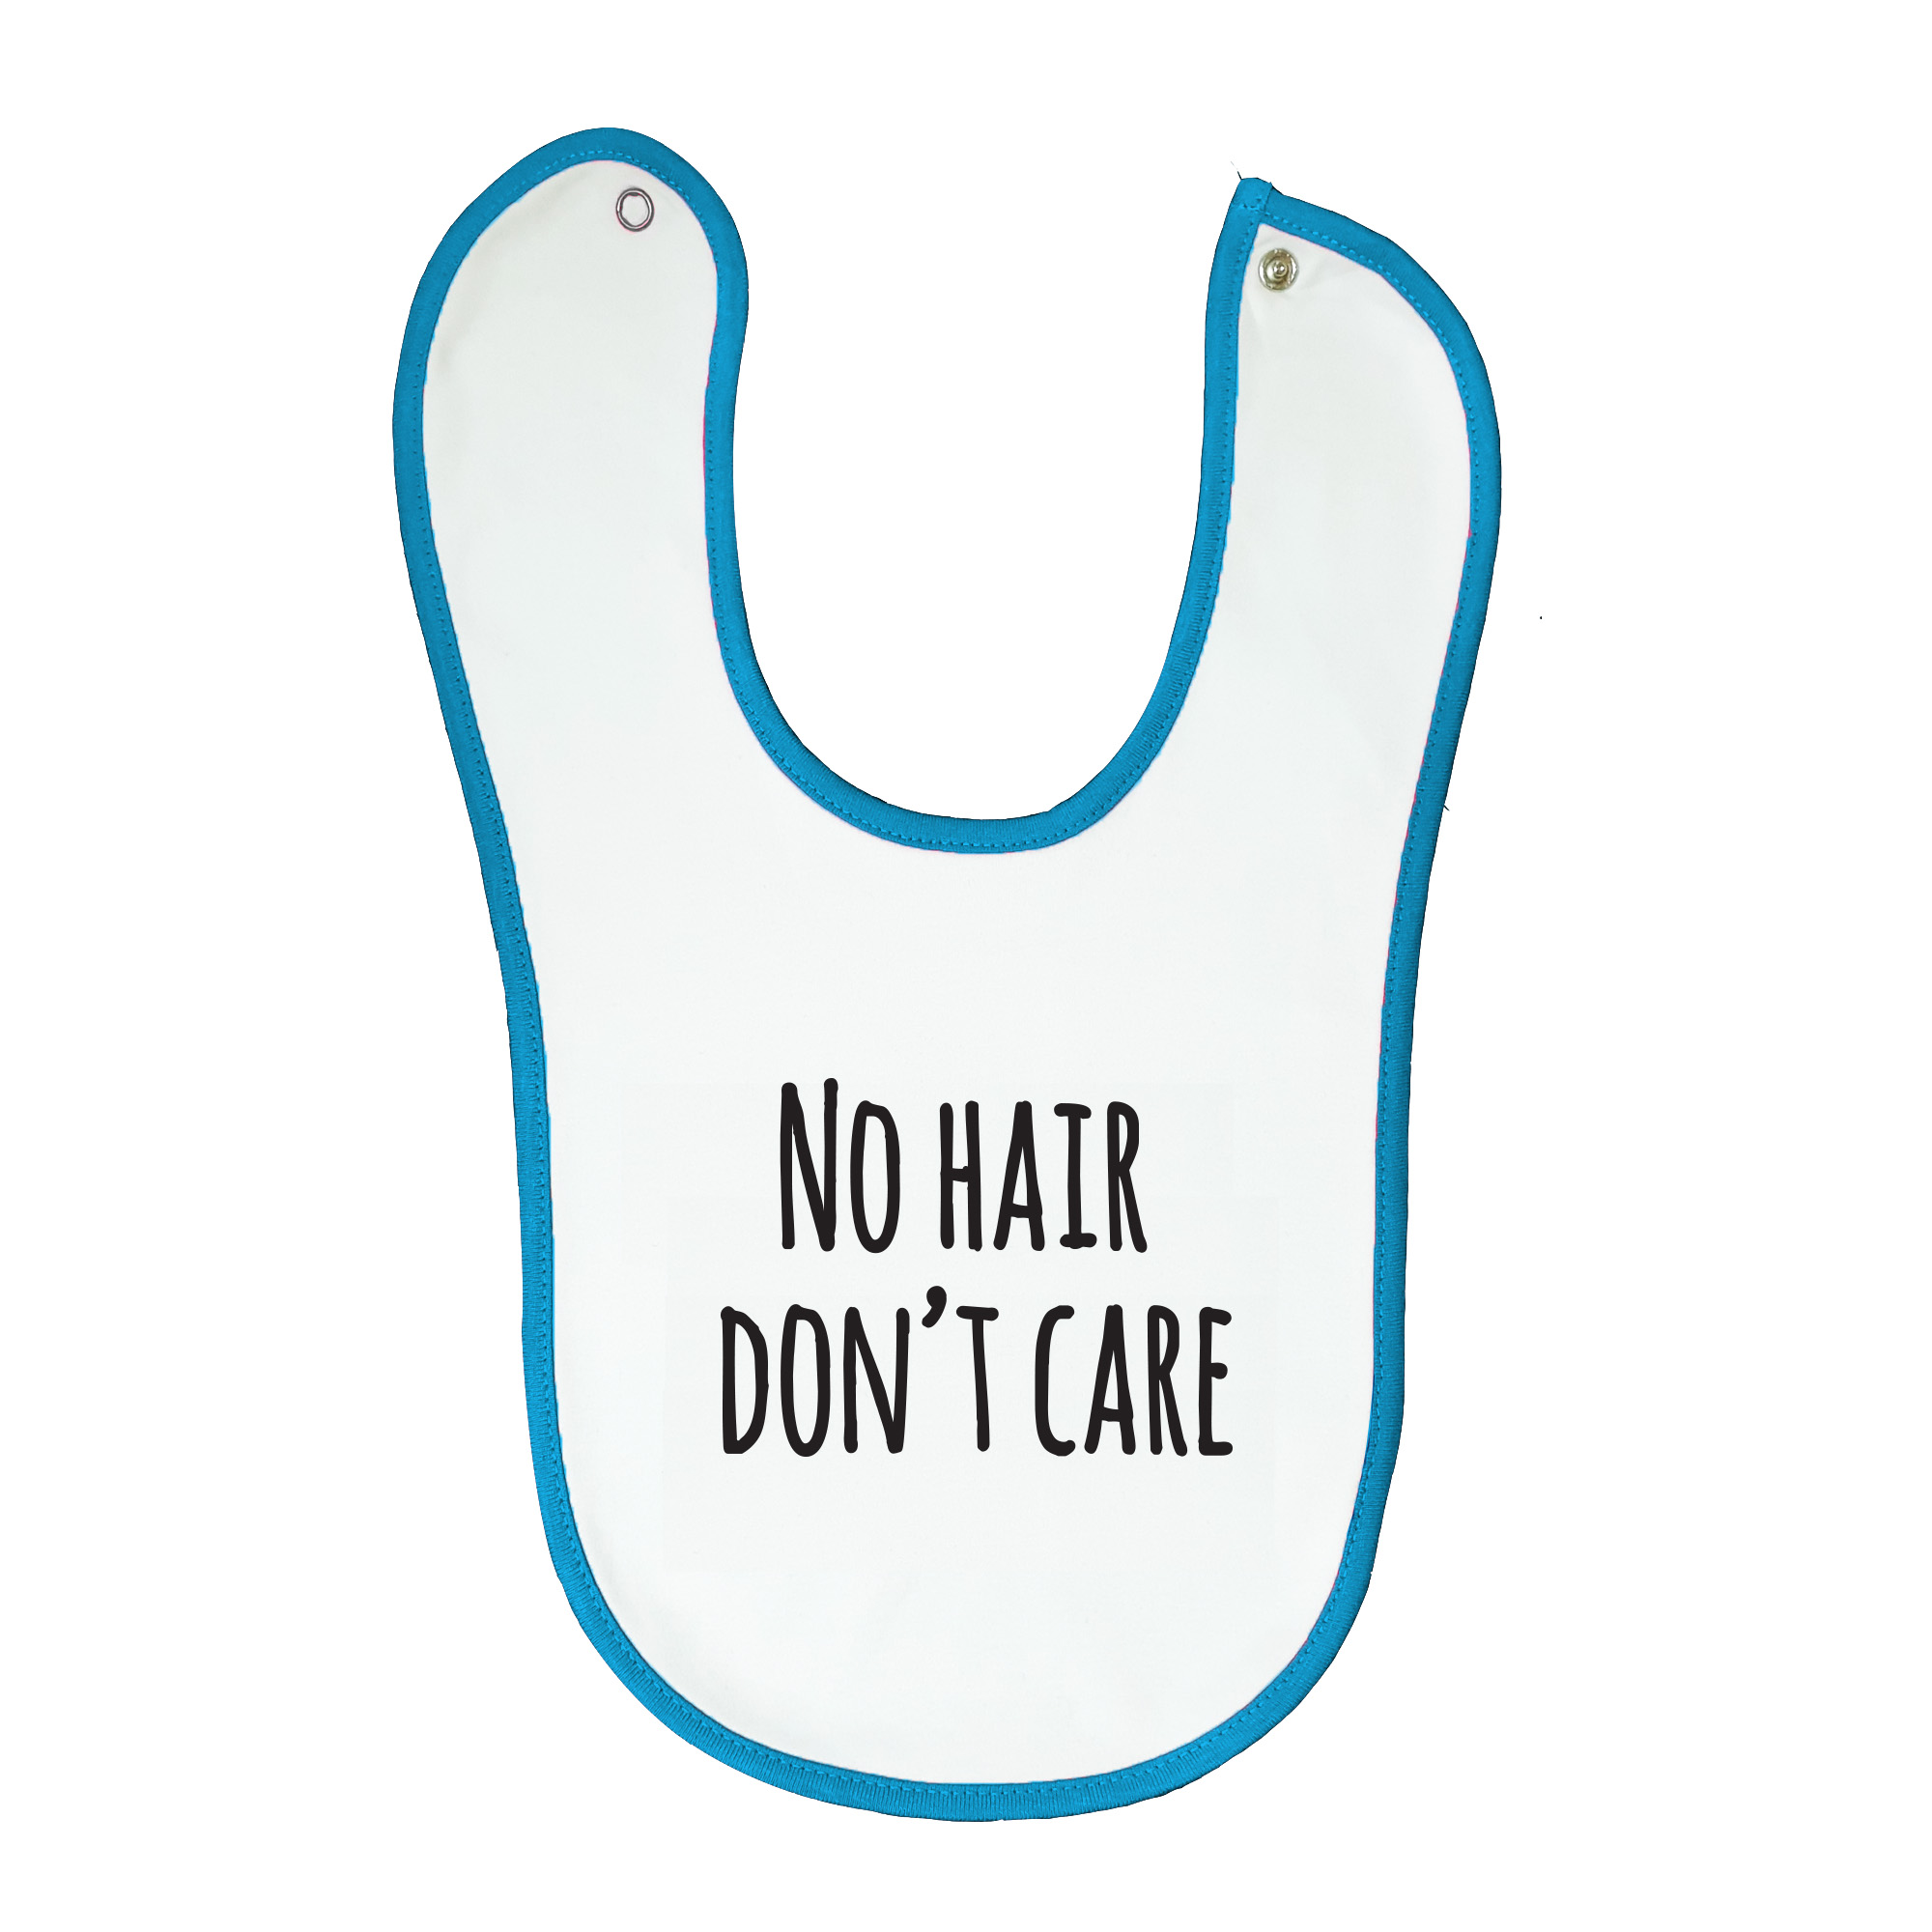 Soft baby bib, white with blue trim, 100% cotton machine washable Age: 6-12 months. Print: No Hair Don't Care.